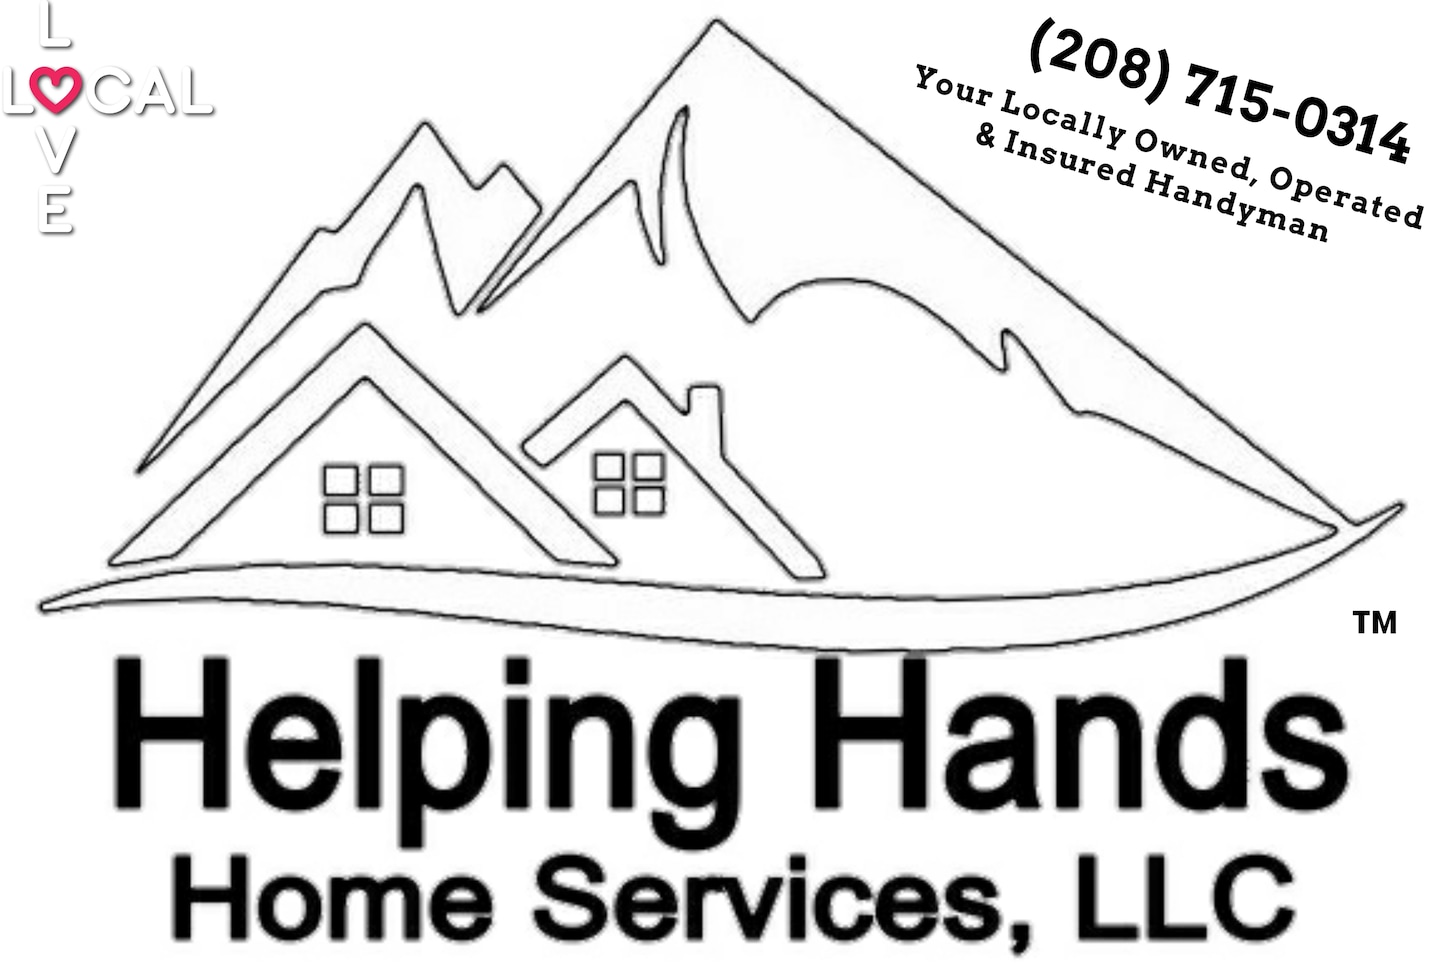 Helping Hands Home Services, LLC